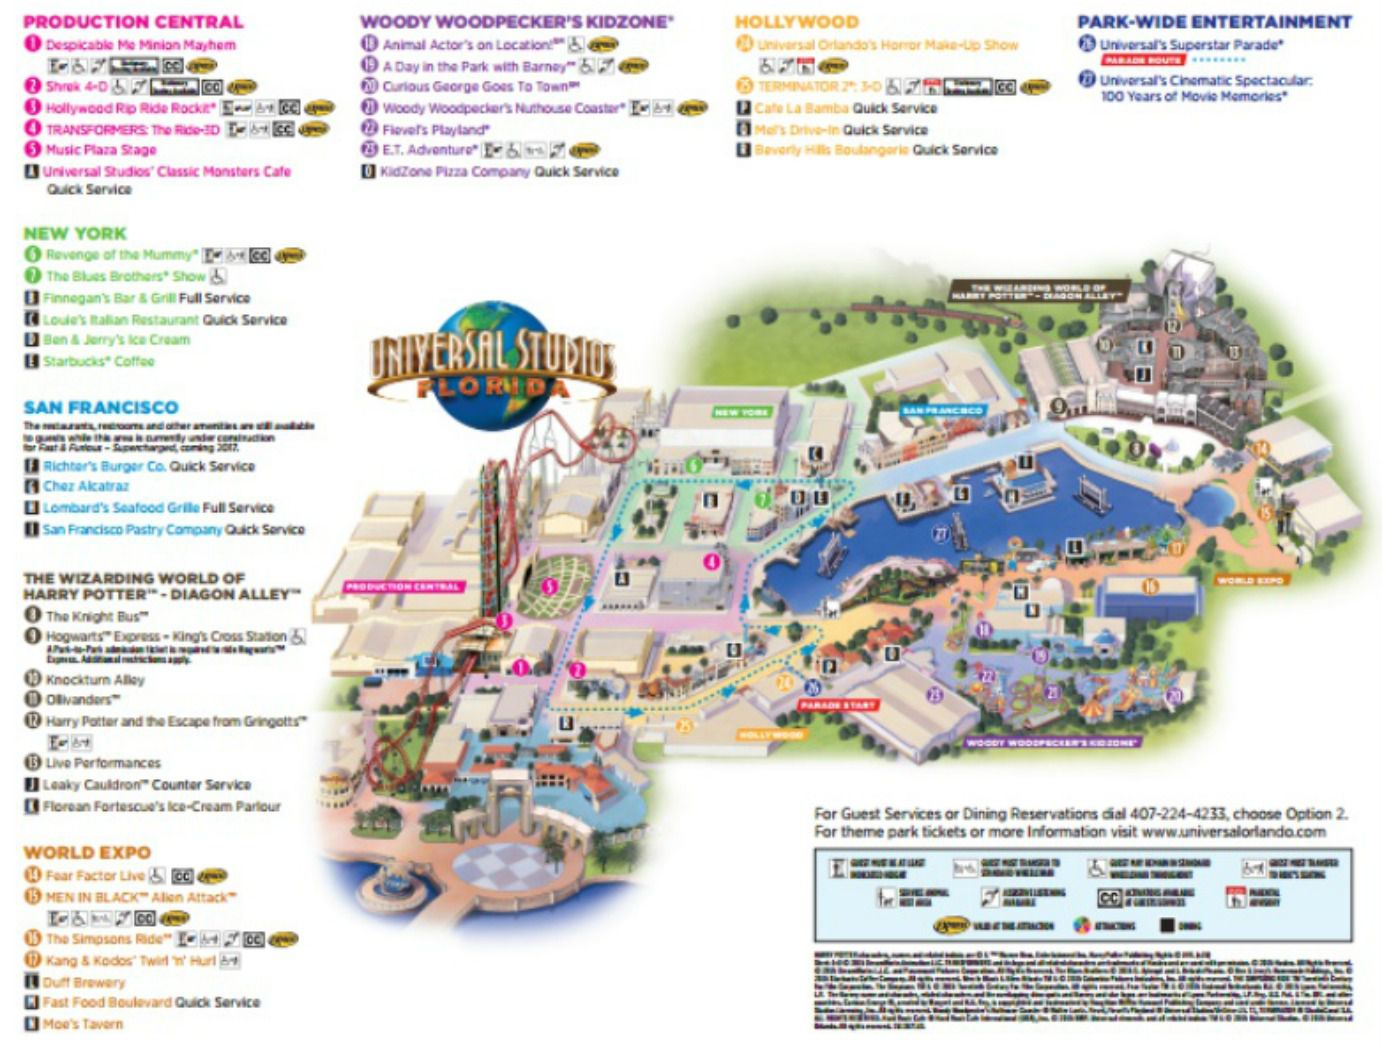 Universal Studios Map Maps of Universal Orlando Resort's Parks and Hotels Universal Studios Map